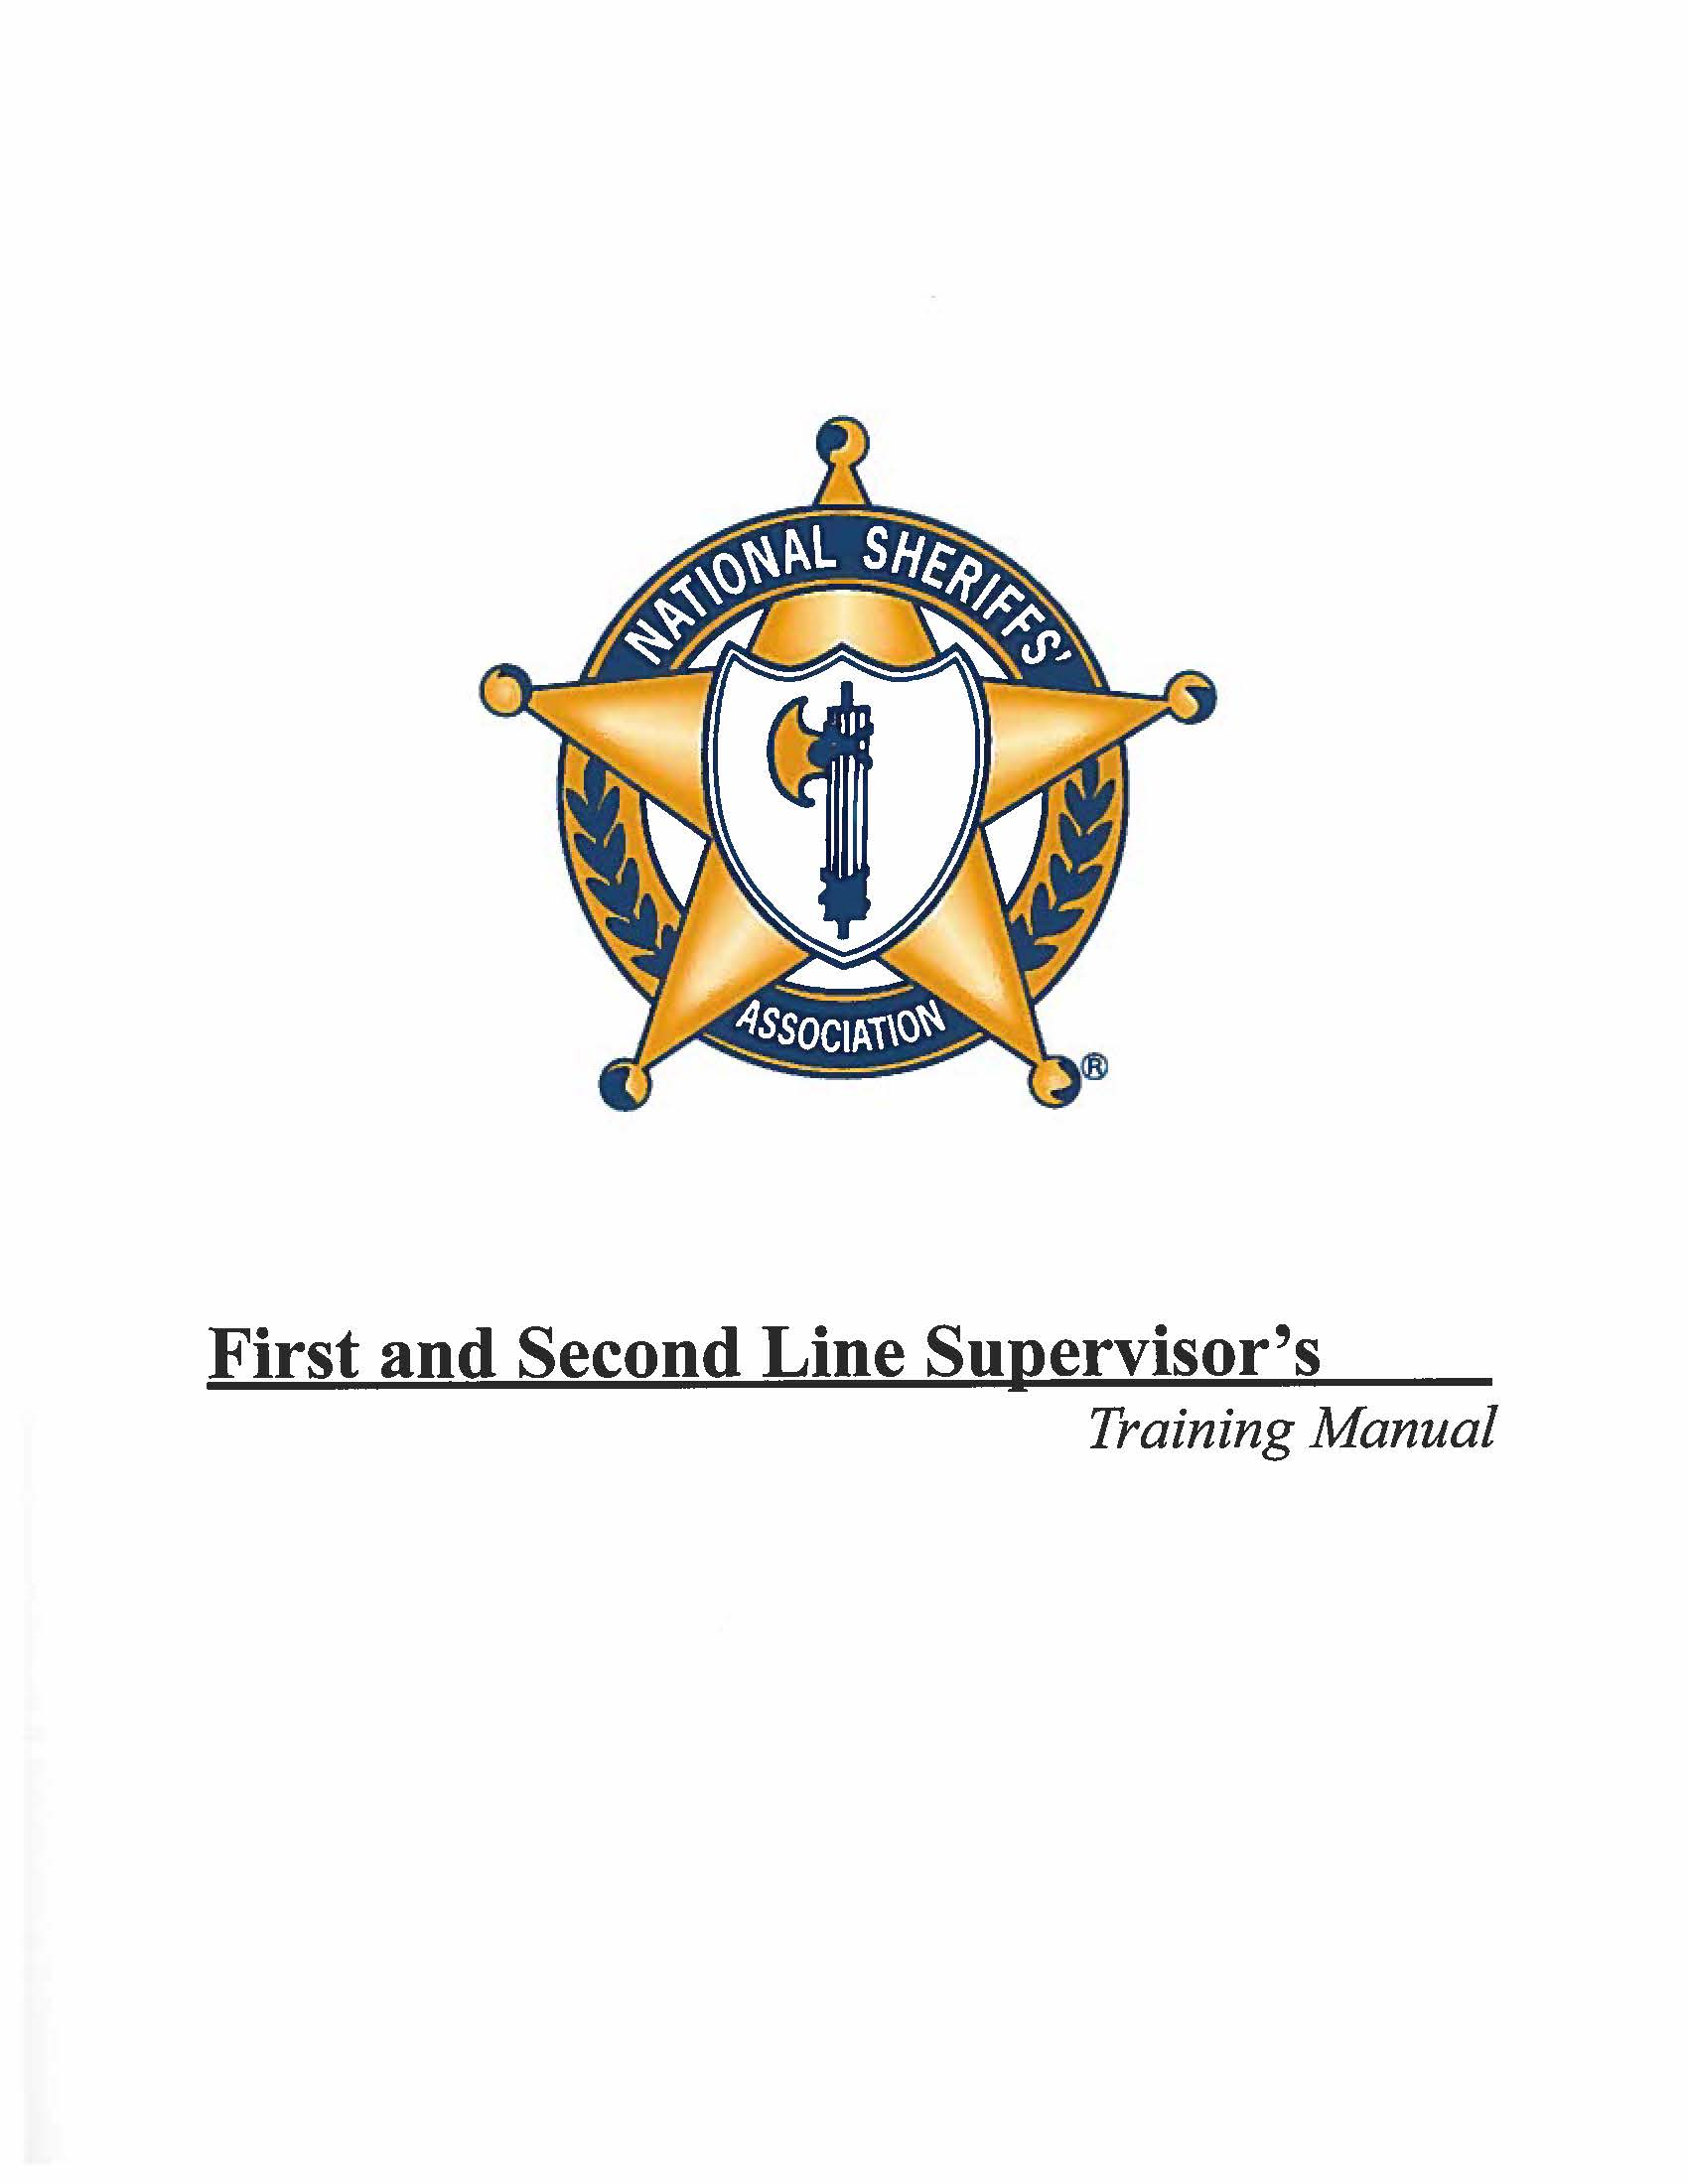 First and Second Line Supervisors Training Manual